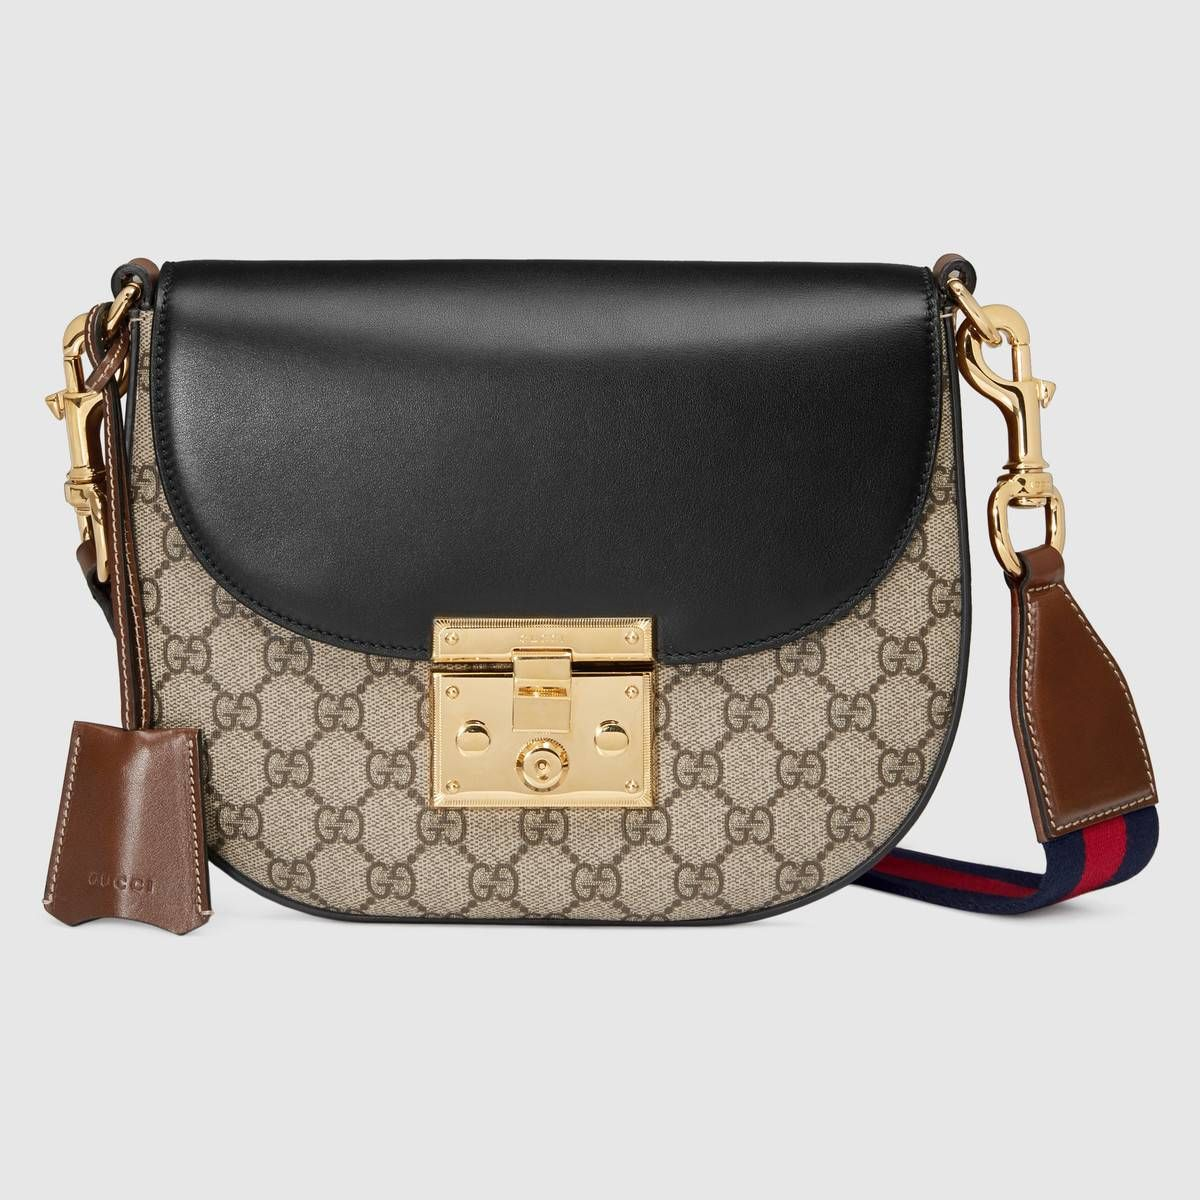 1155375f2 Shop the Padlock medium GG shoulder bag by Gucci. A new shape from the  Padlock collection, this medium shoulder bag has a flap closure with a key  lock ...